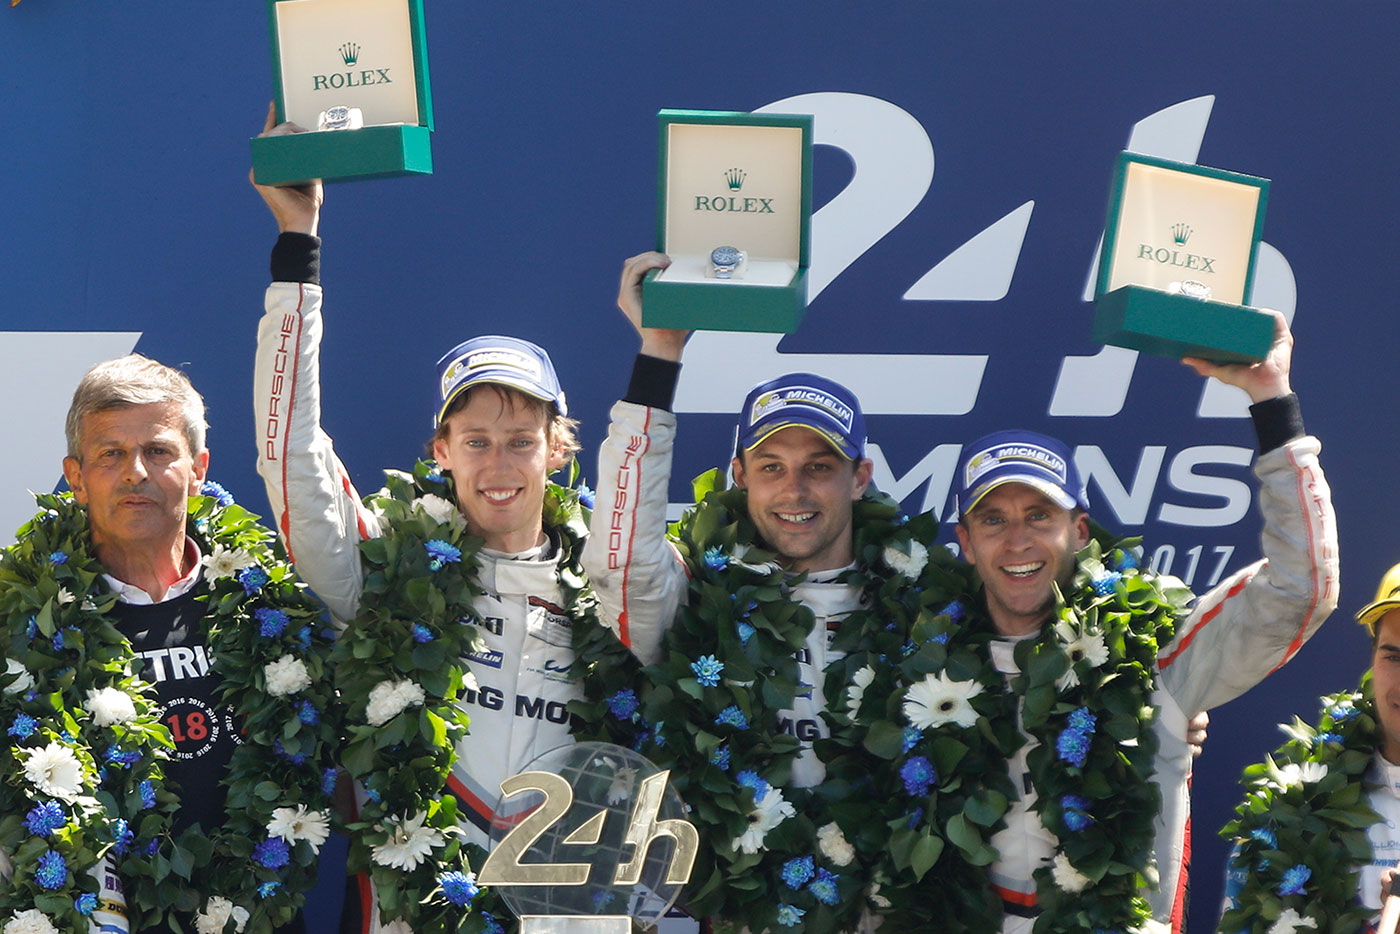 Checkered flag: Porsche wins Le Mans